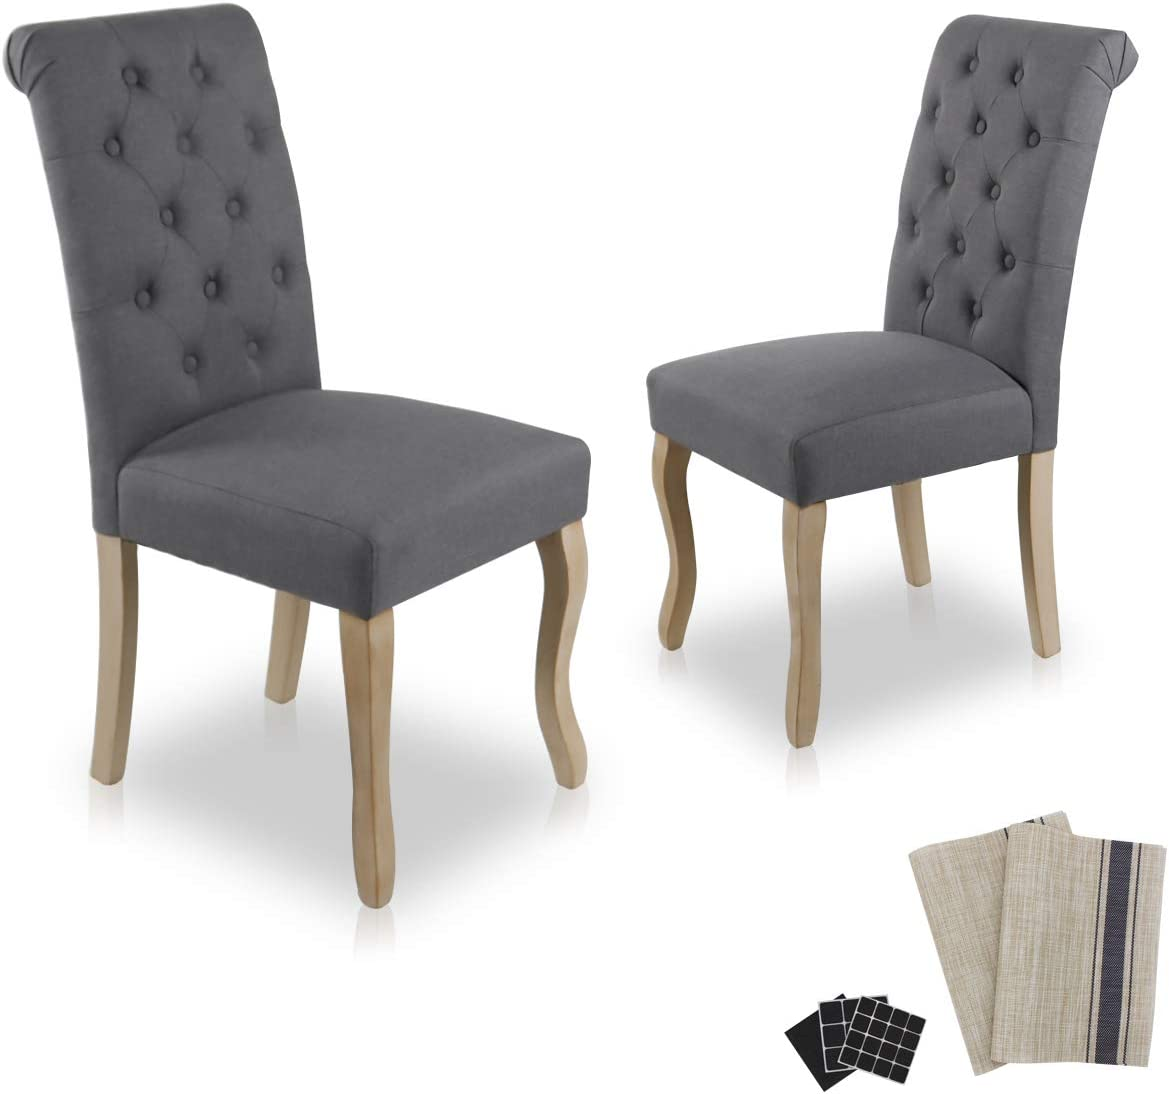 Dinner Chairs Upholstered Accent Fabric Dining Chair with Solid Wood Legs for Kitchen Living Room Set of 2 Grey